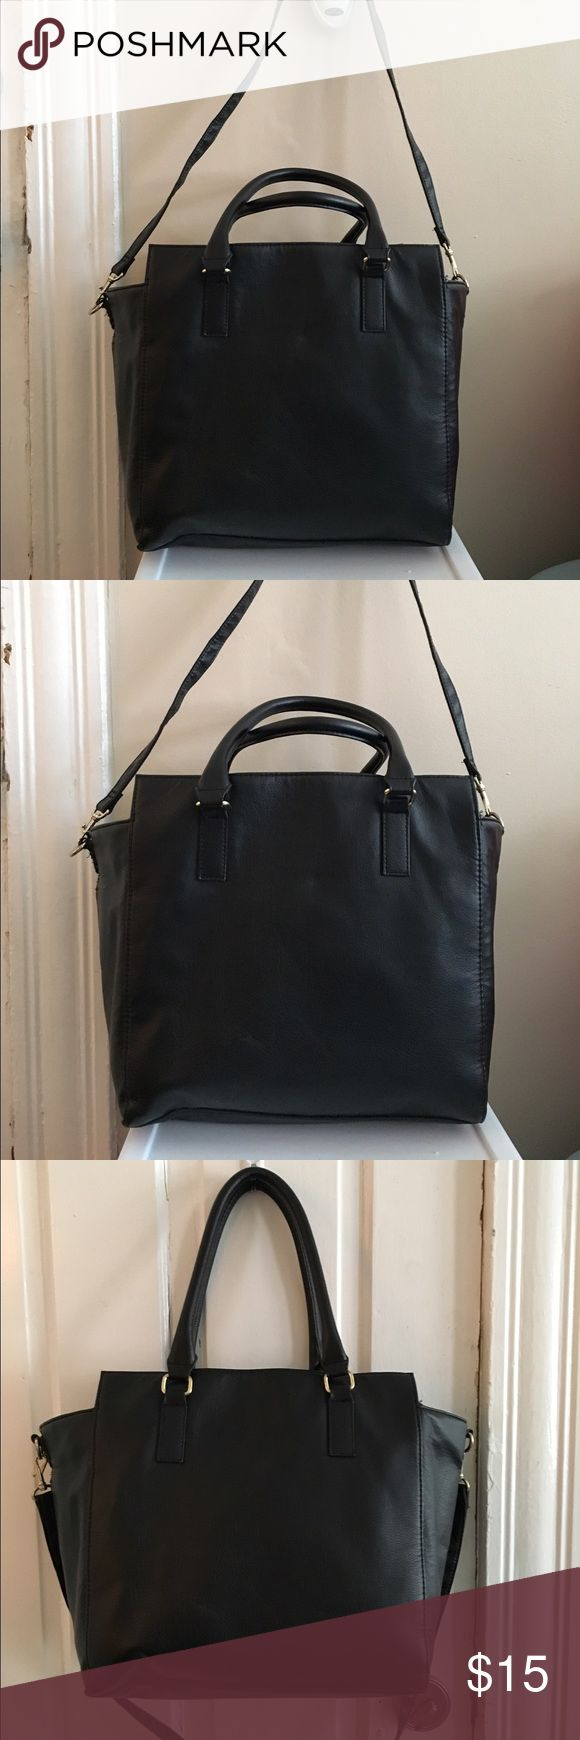 H&M black tote bag H&M black tote bag! Perfect for work, school etc. holds a lot. H&M Bags Totes